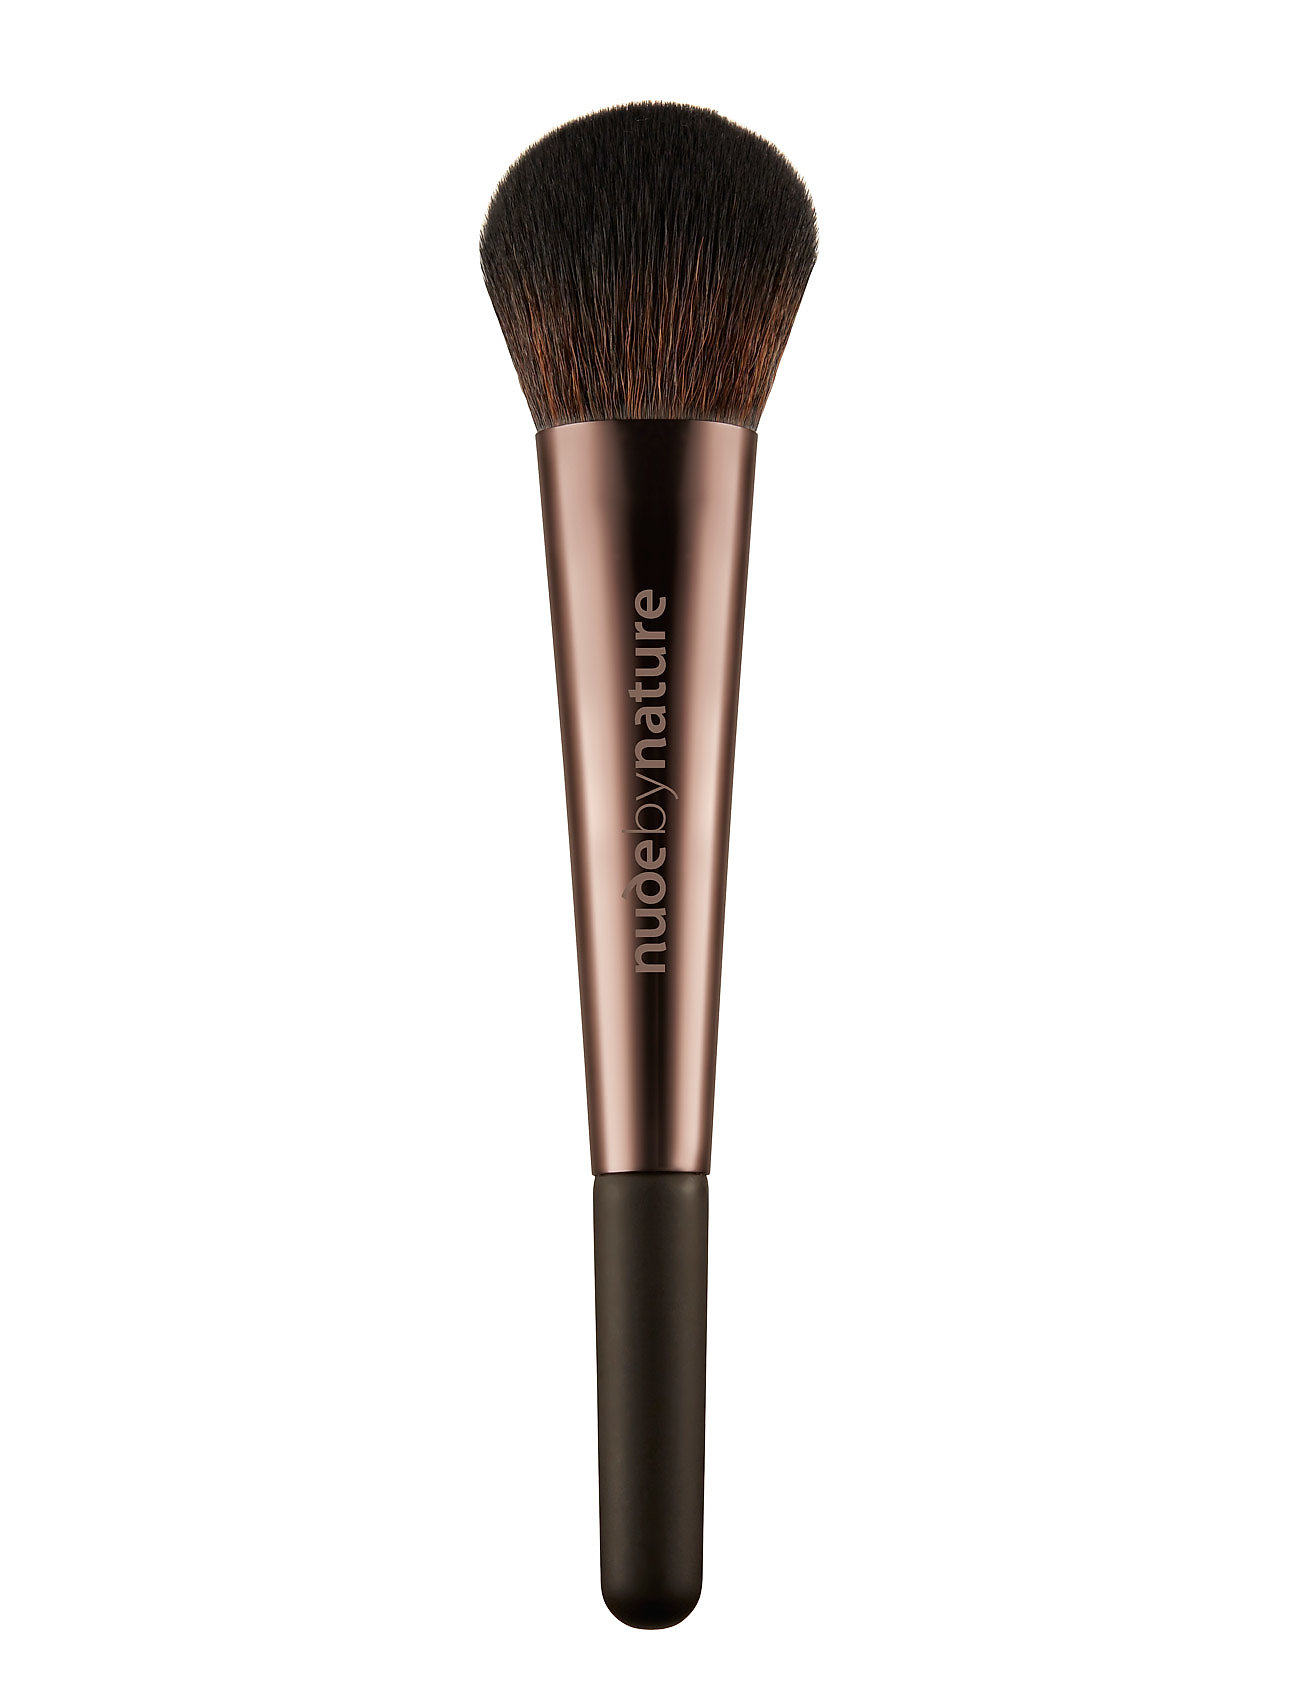 Image of Brushes 04 Contour Brush Beauty WOMEN Makeup Makeup Brushes Face Brushes Nude Nude By Nature (2778815199)